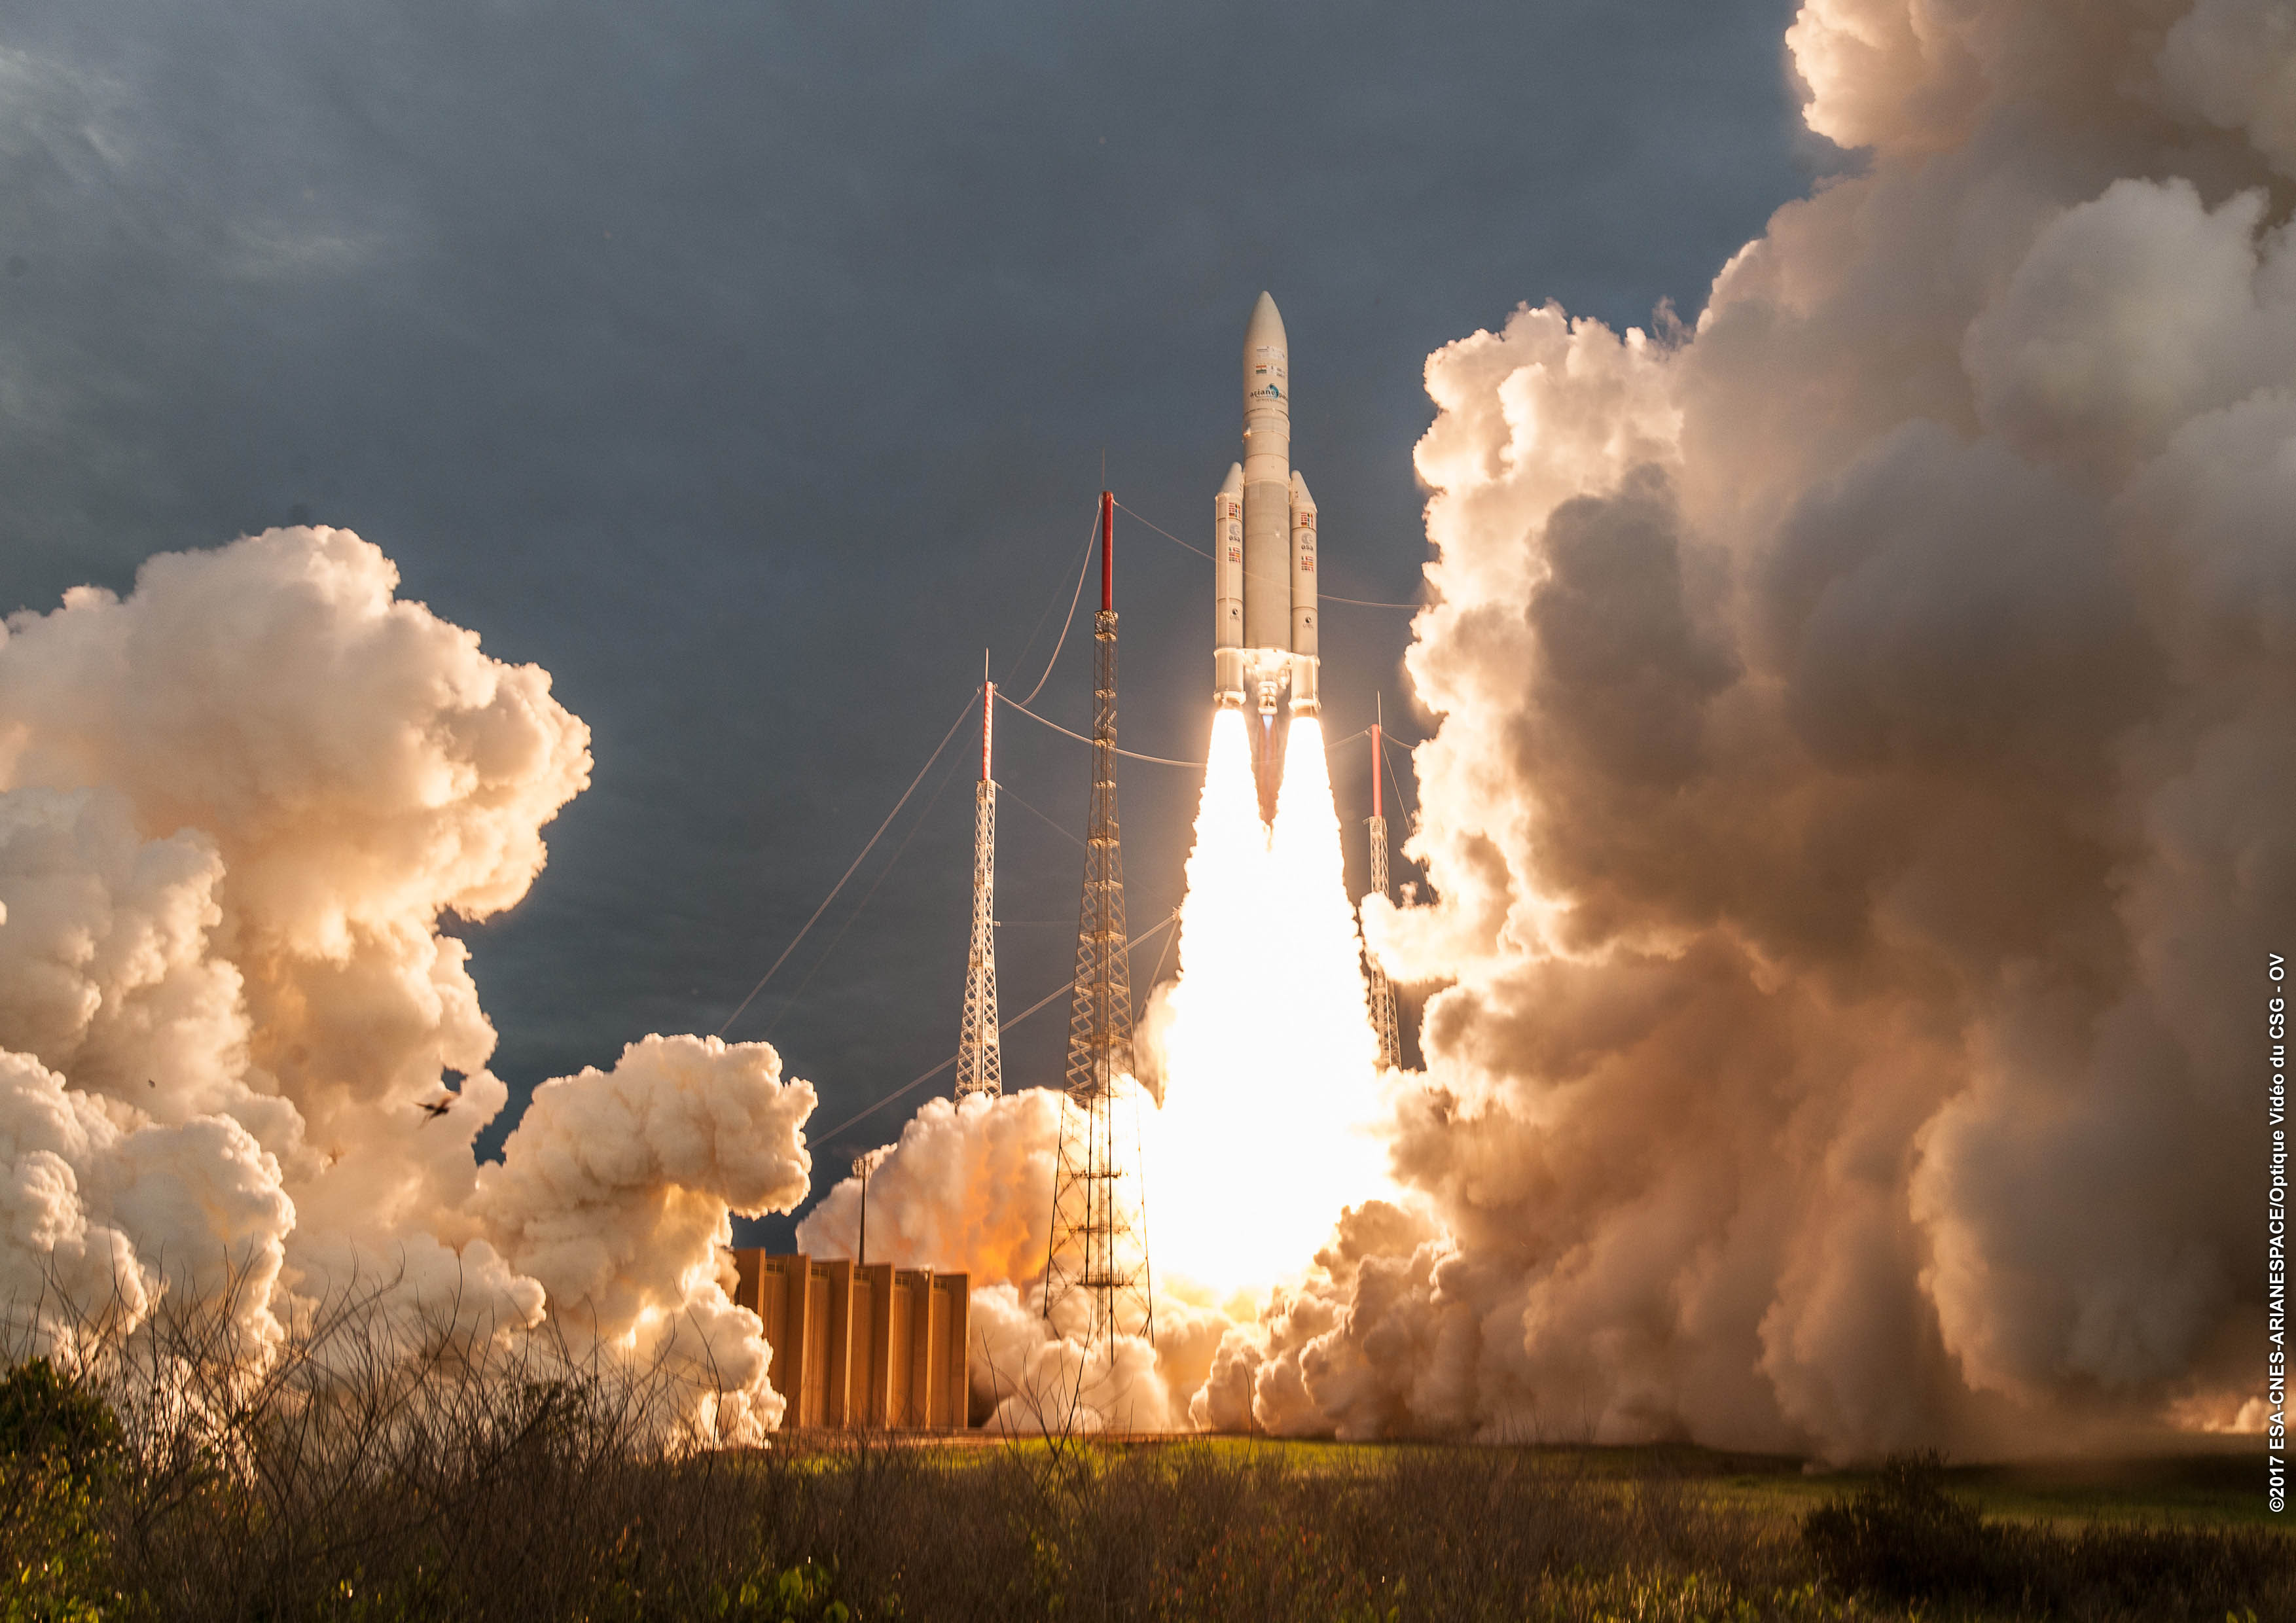 100th launch of Ariane 5: The #withariane campaign in full swing